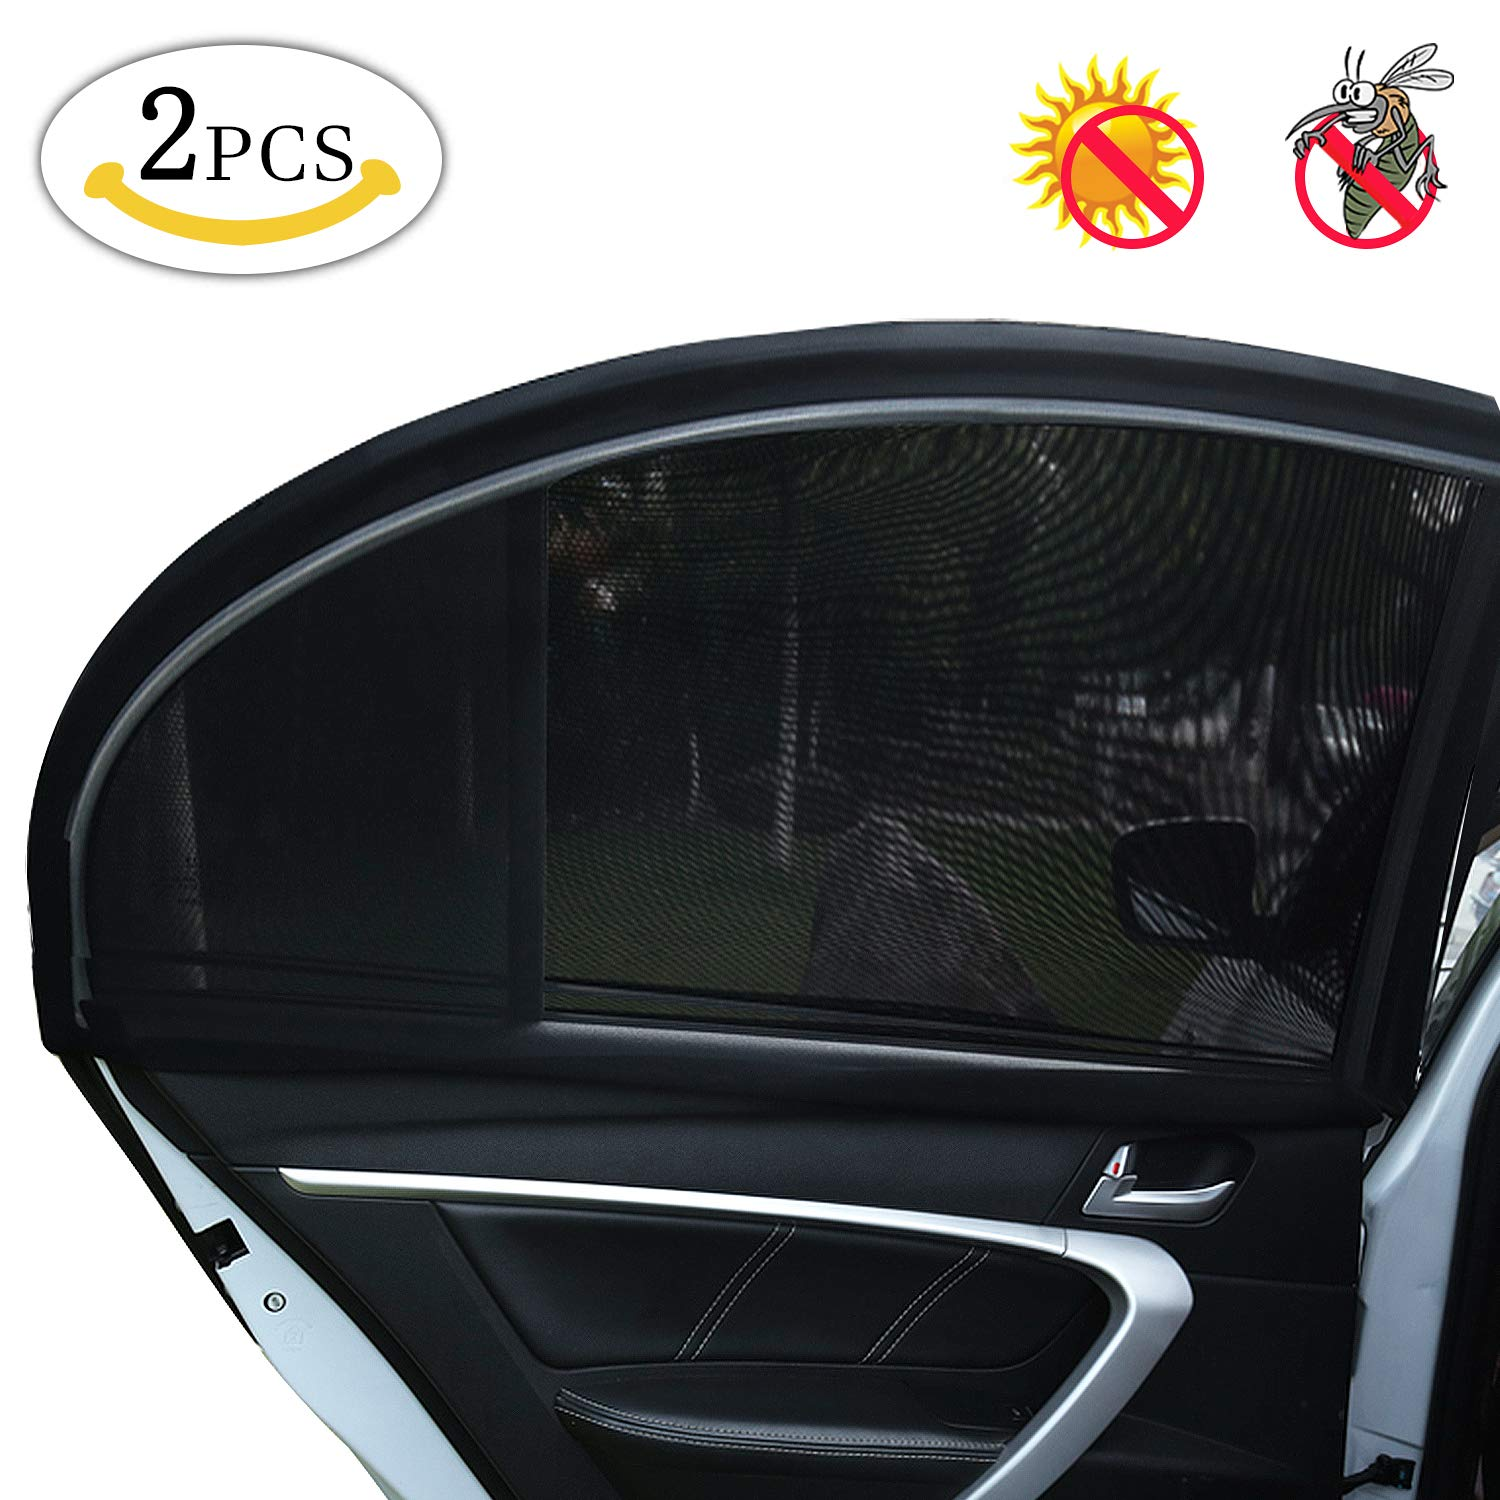 MMTX 2 Pack Car Window Baby Sun Shade UV Protect for Baby/Pet/Kids Anti-Mosquito Protect (Black 44.48